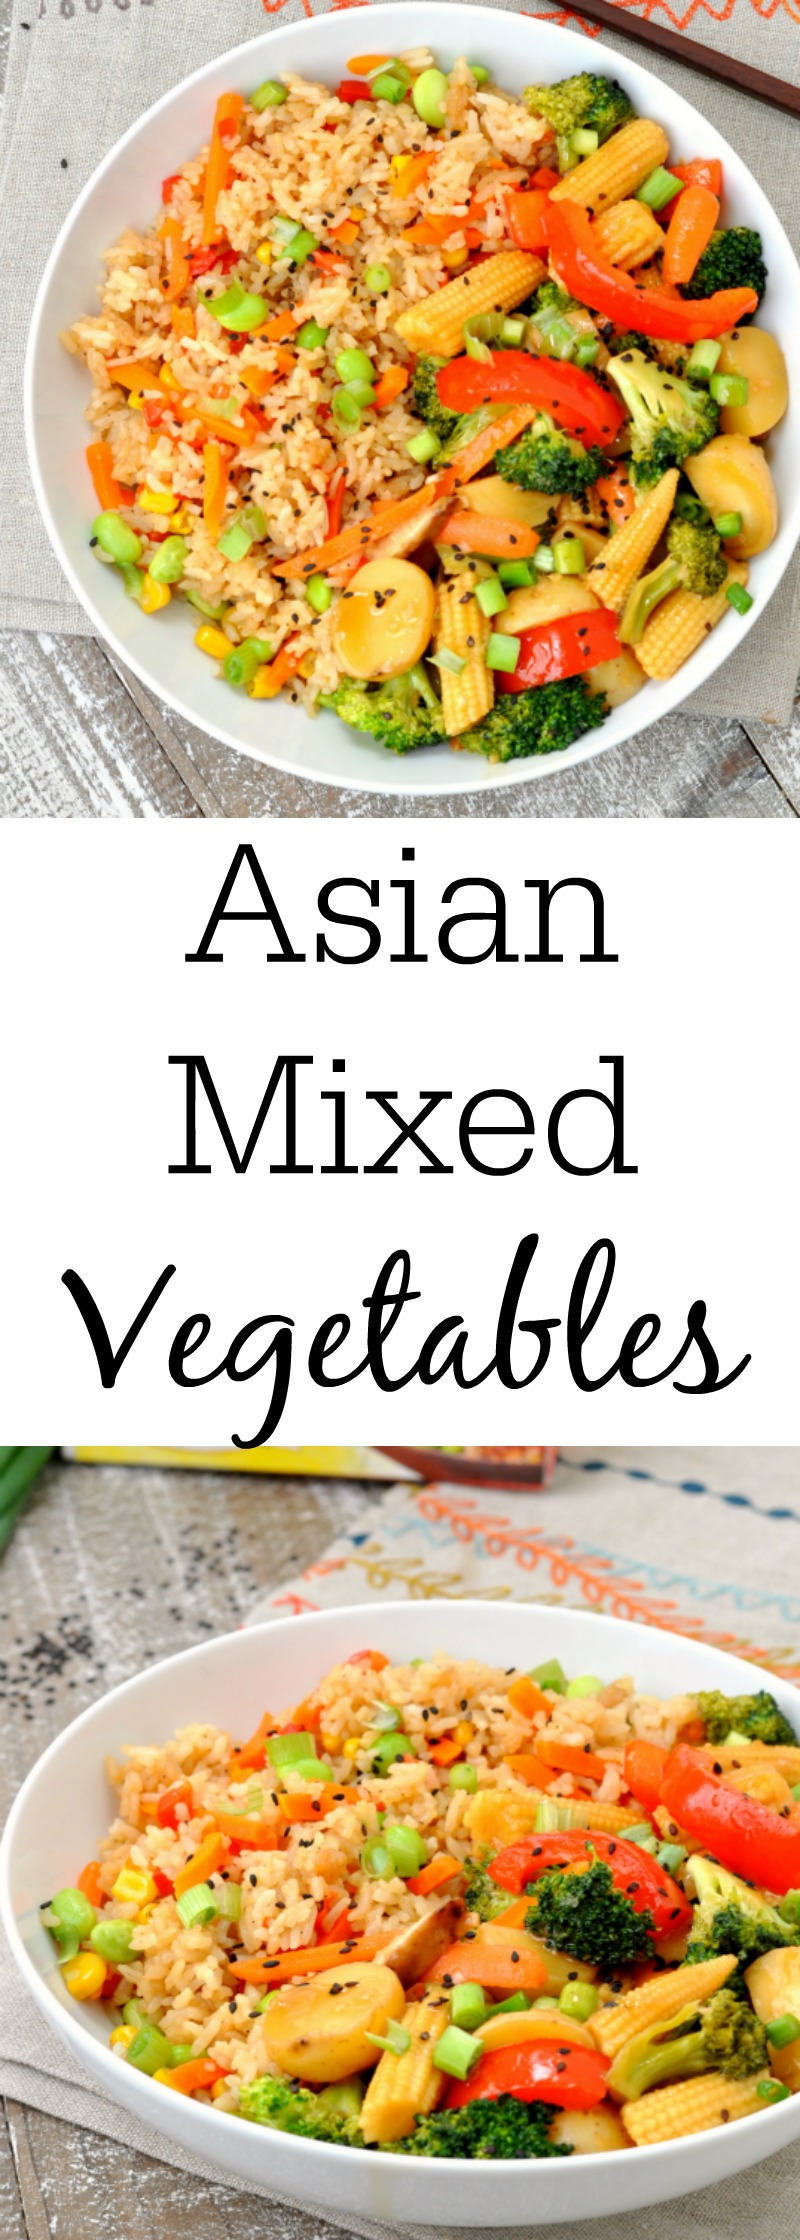 Asian Mixed Vegetables